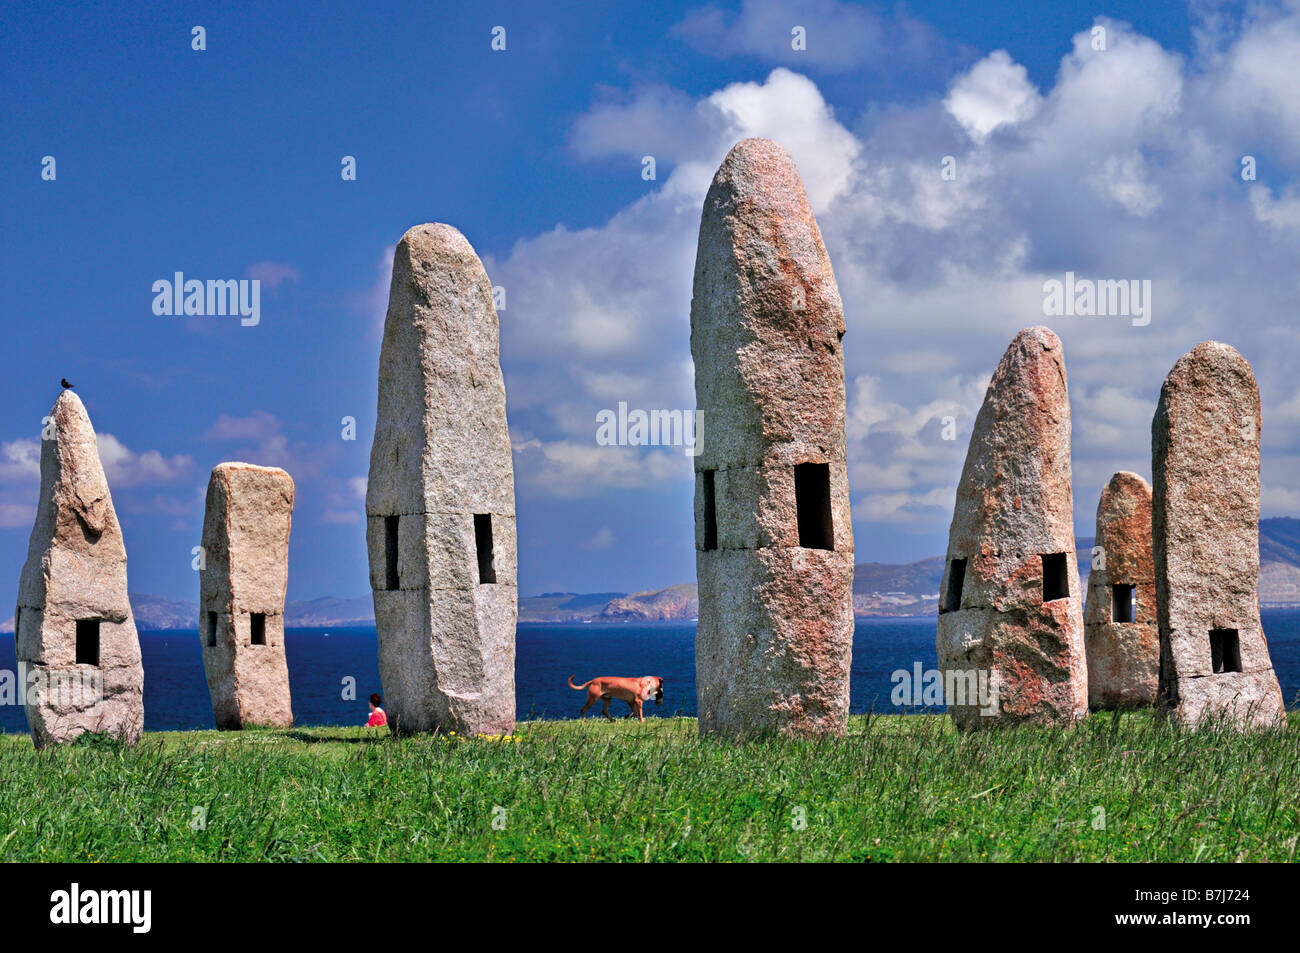 Menhirs´monument in the sculpture park Parque Celta in A Coruna, Galicia, Spain - Stock Image